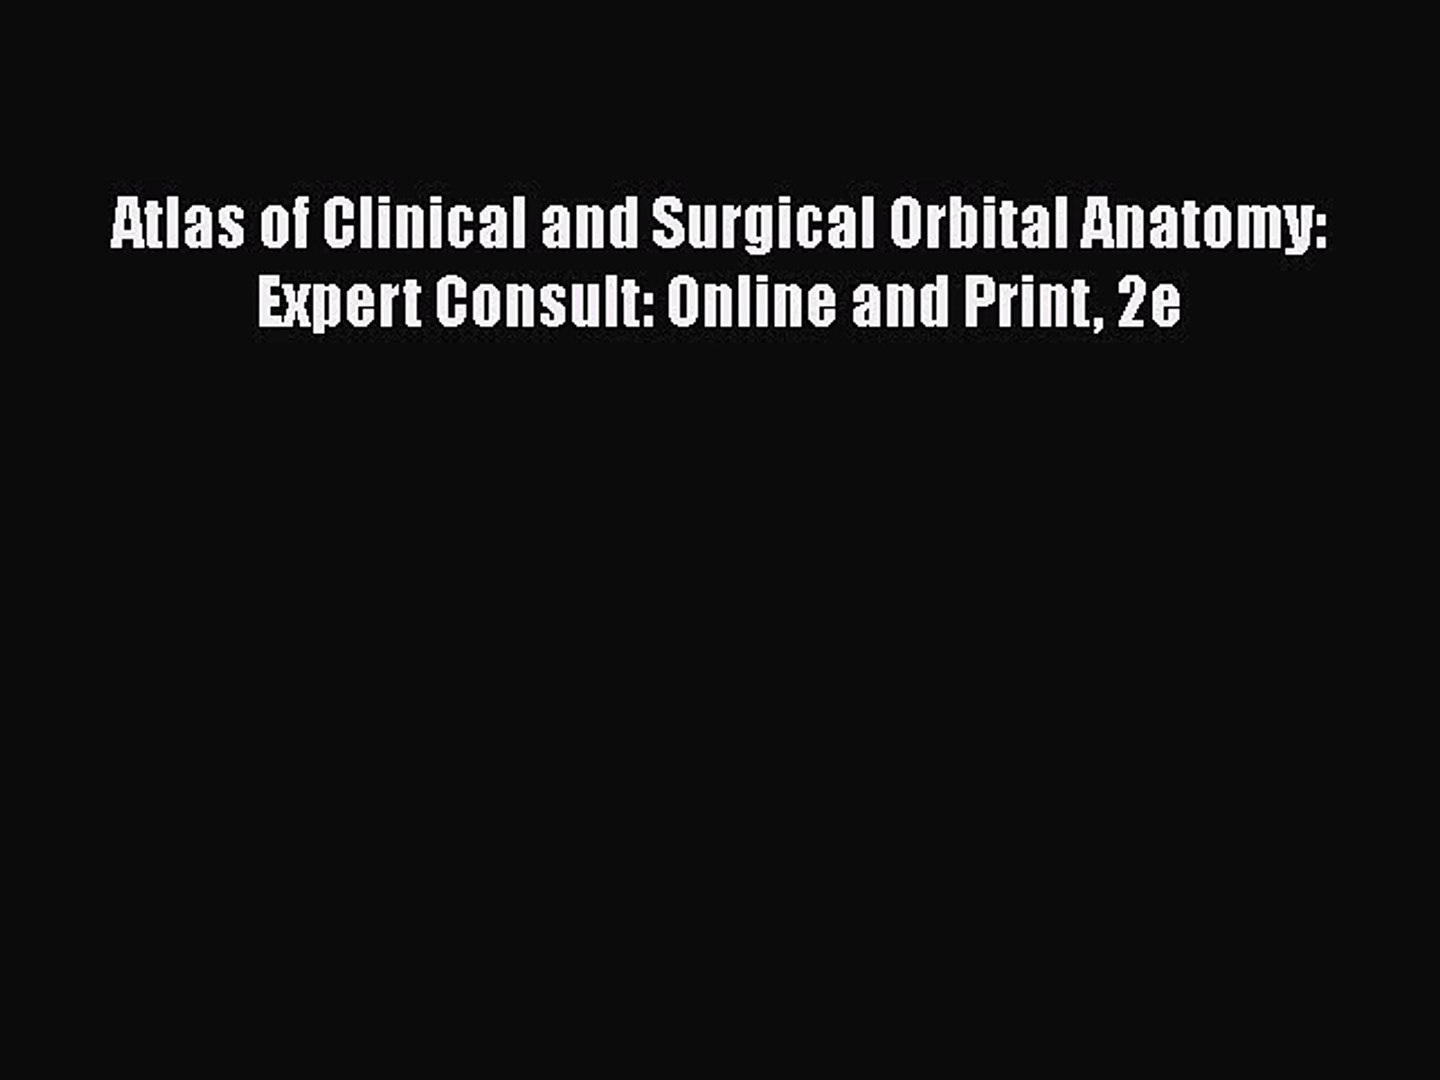 Atlas of Clinical and Surgical Orbital Anatomy E-Book